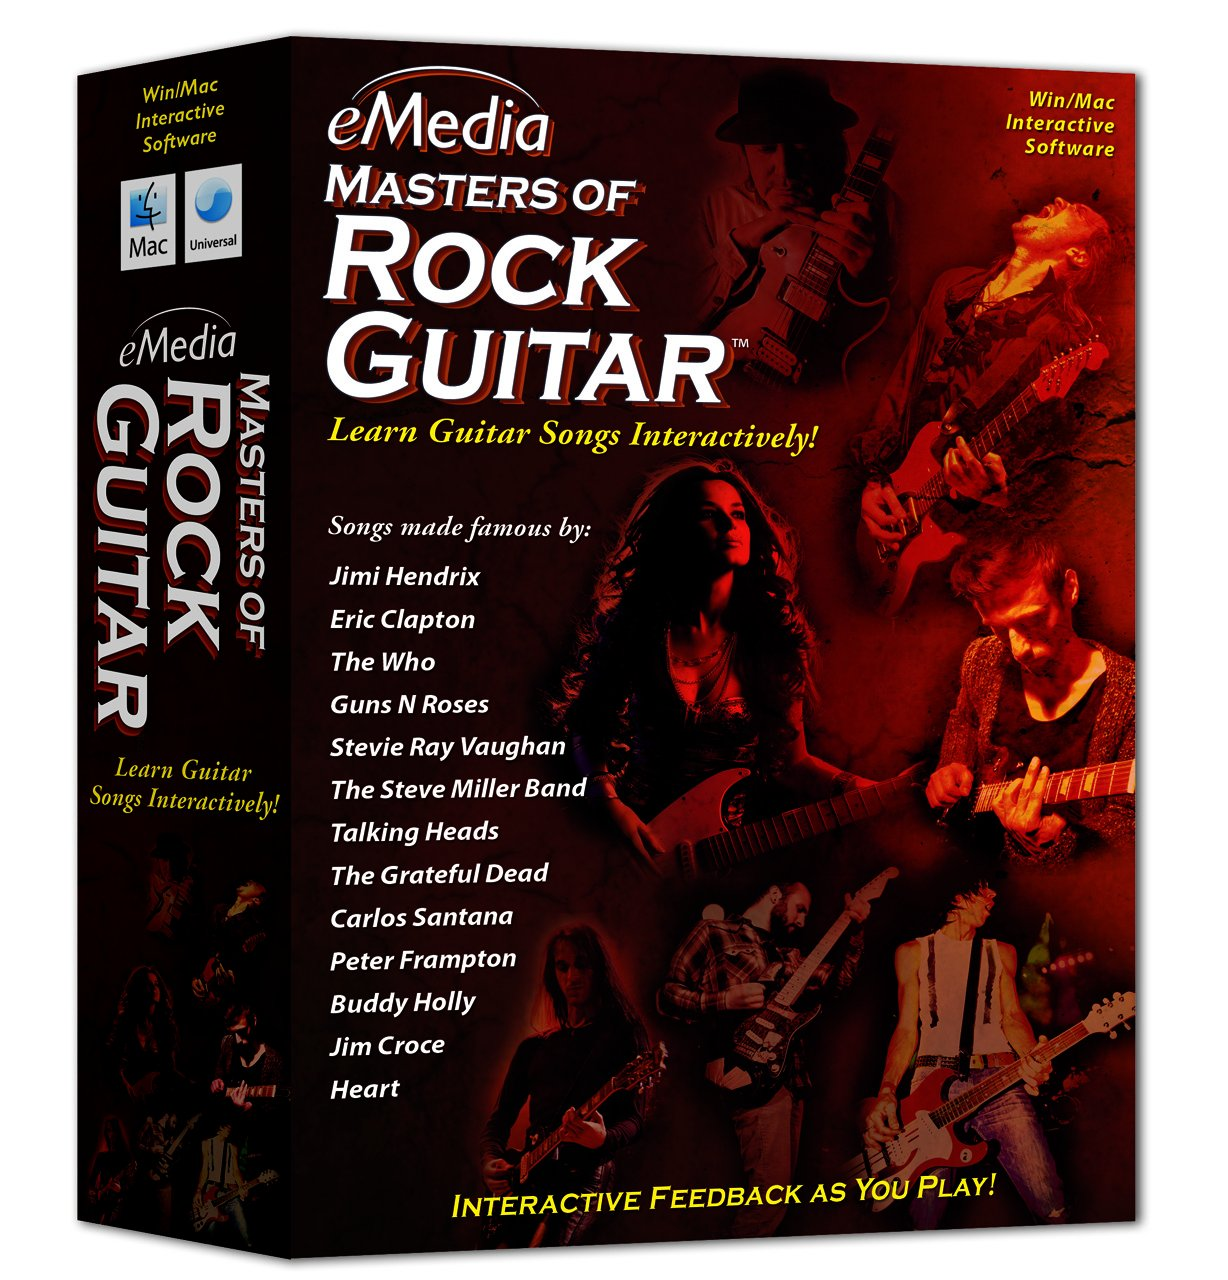 Amazon Emedia Masters Of Rock Guitar Emedia Software